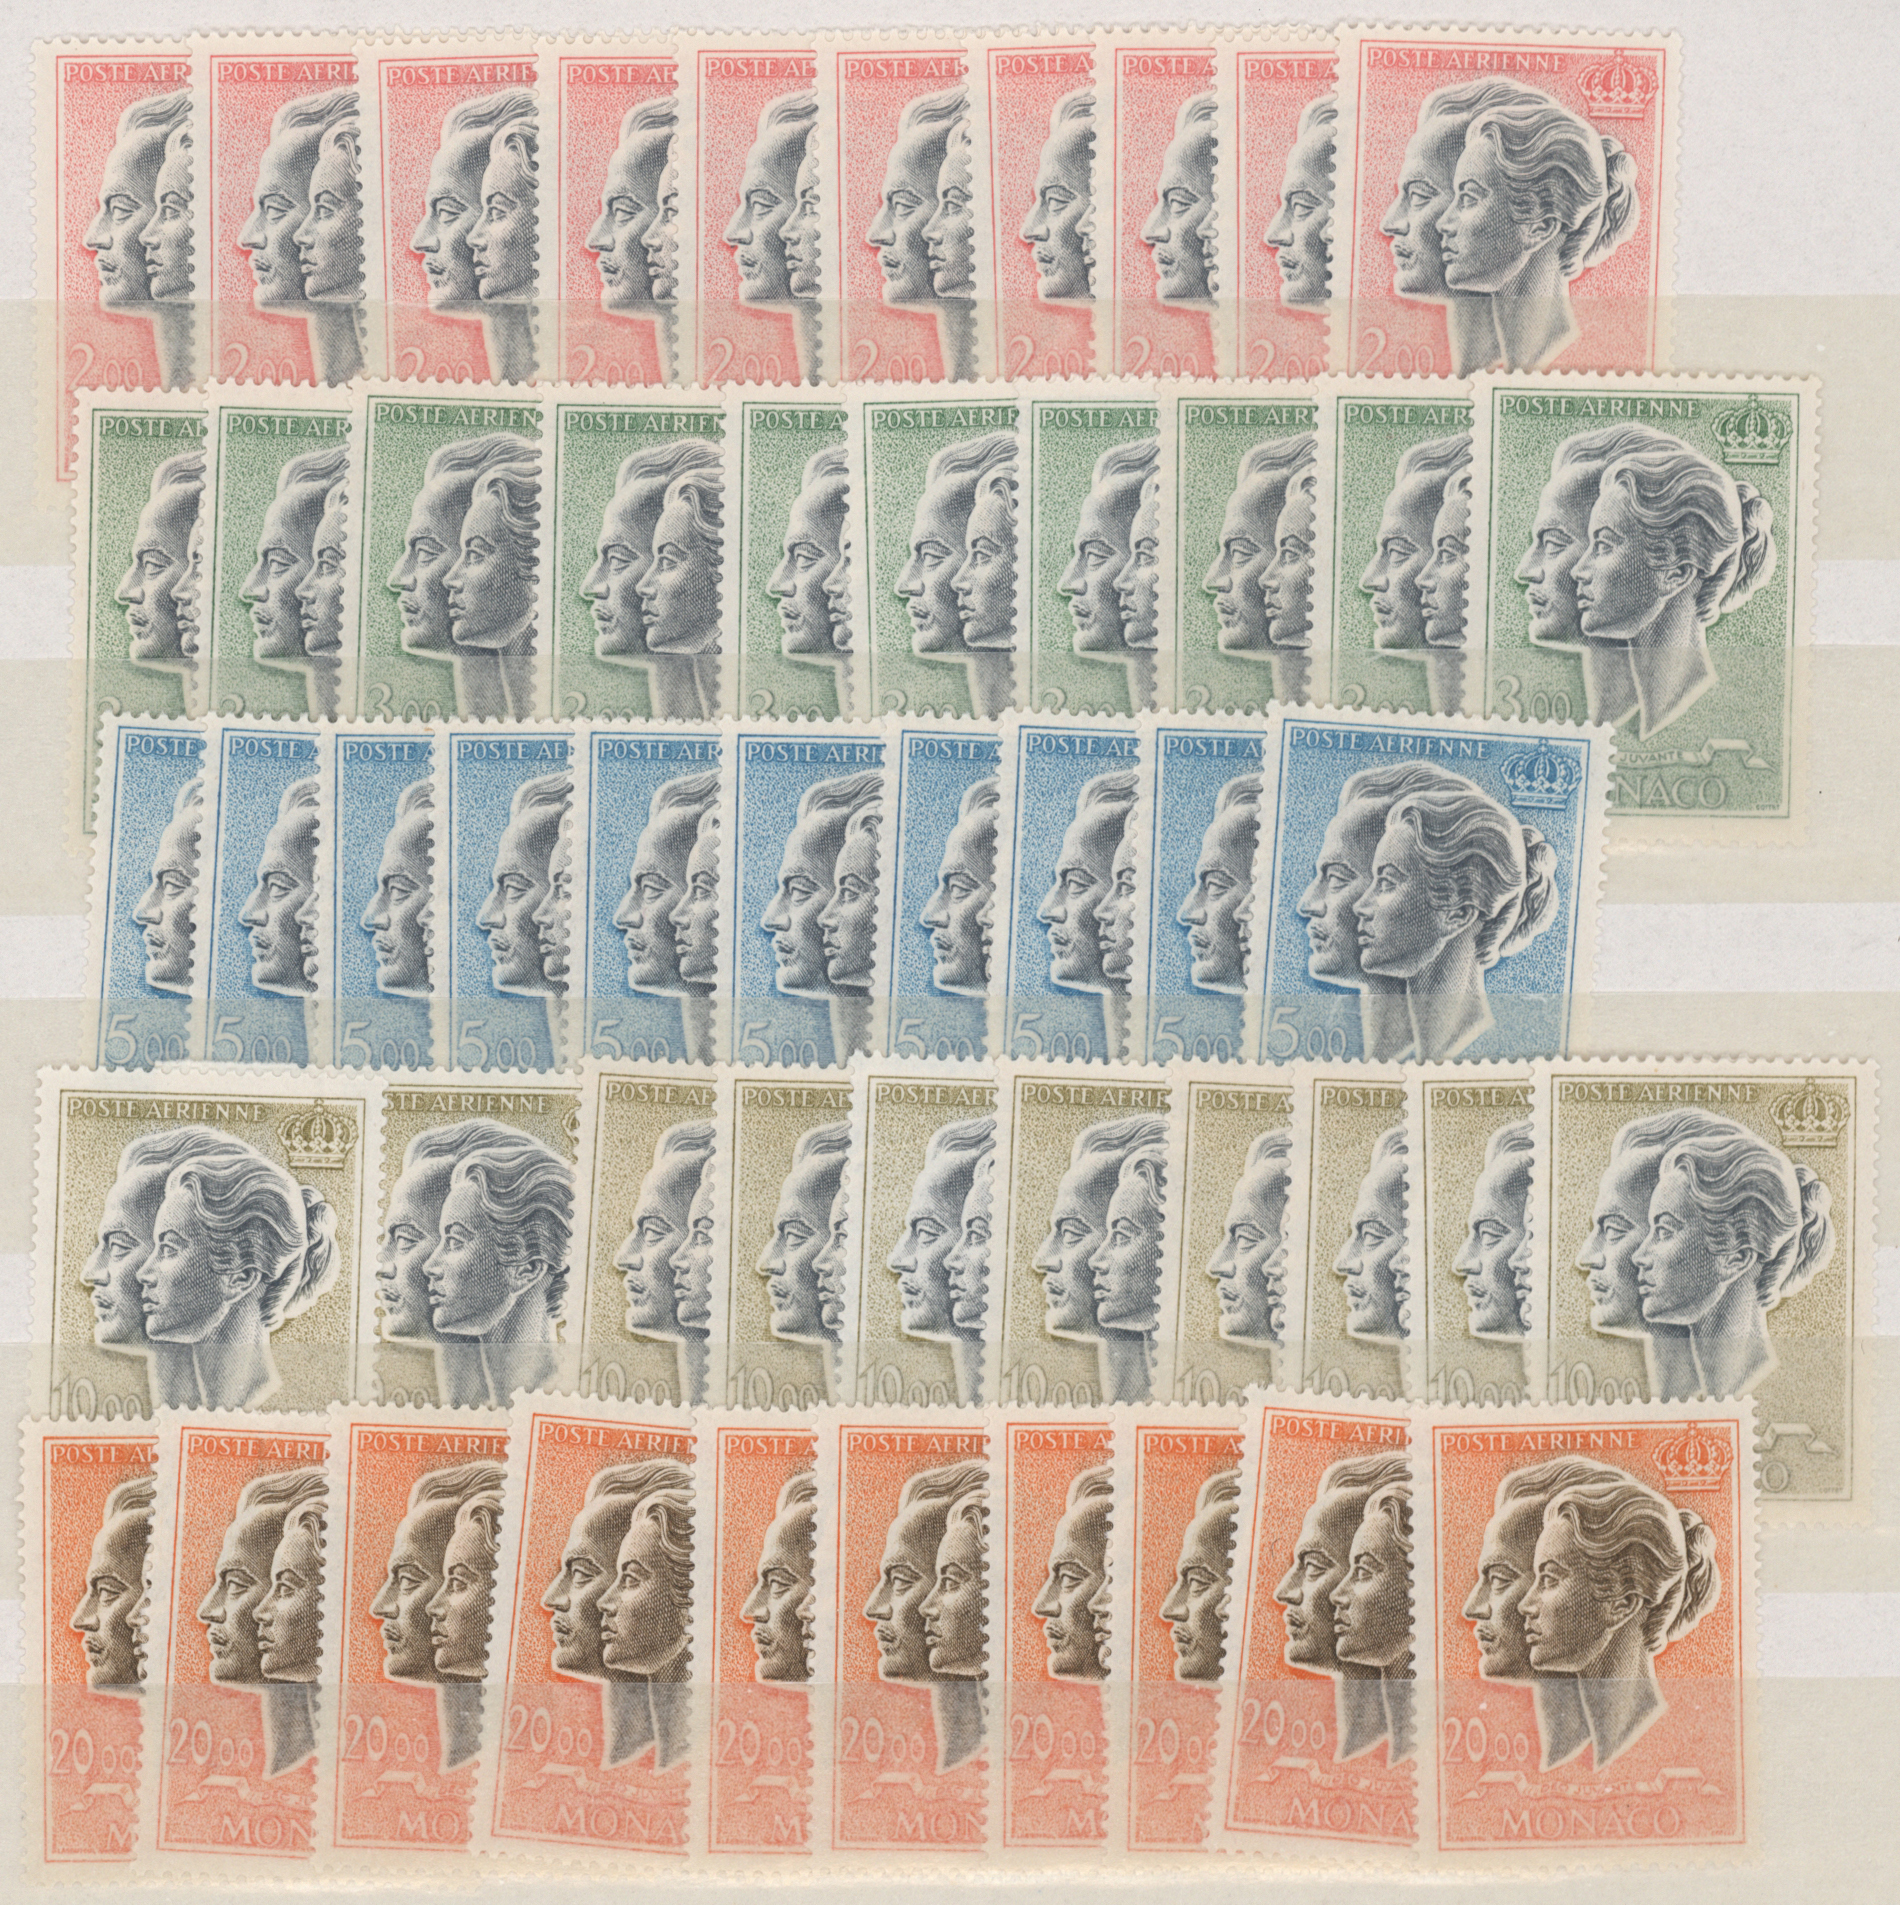 Lot 17862 - Monaco  -  Auktionshaus Christoph Gärtner GmbH & Co. KG Sale #48 collections Overseas  Airmail / Ship mail & Thematics